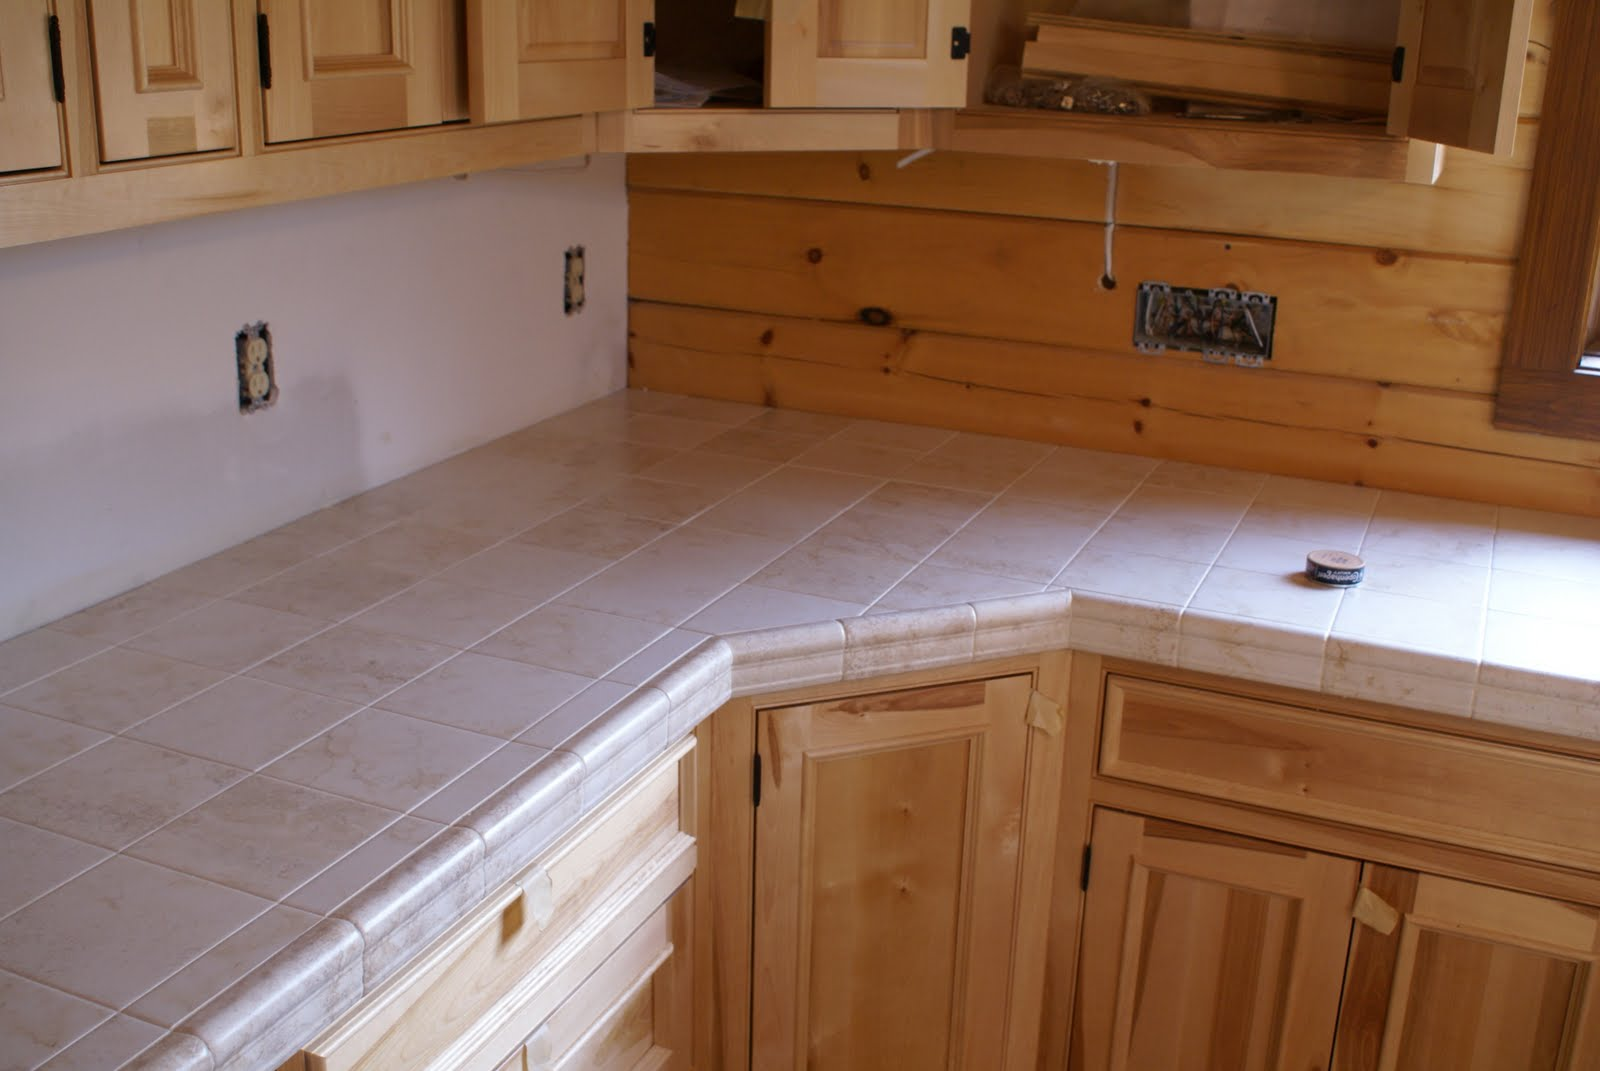 kitchen tile countertops narrow cart hidden bend retreat romney west virginia countertop